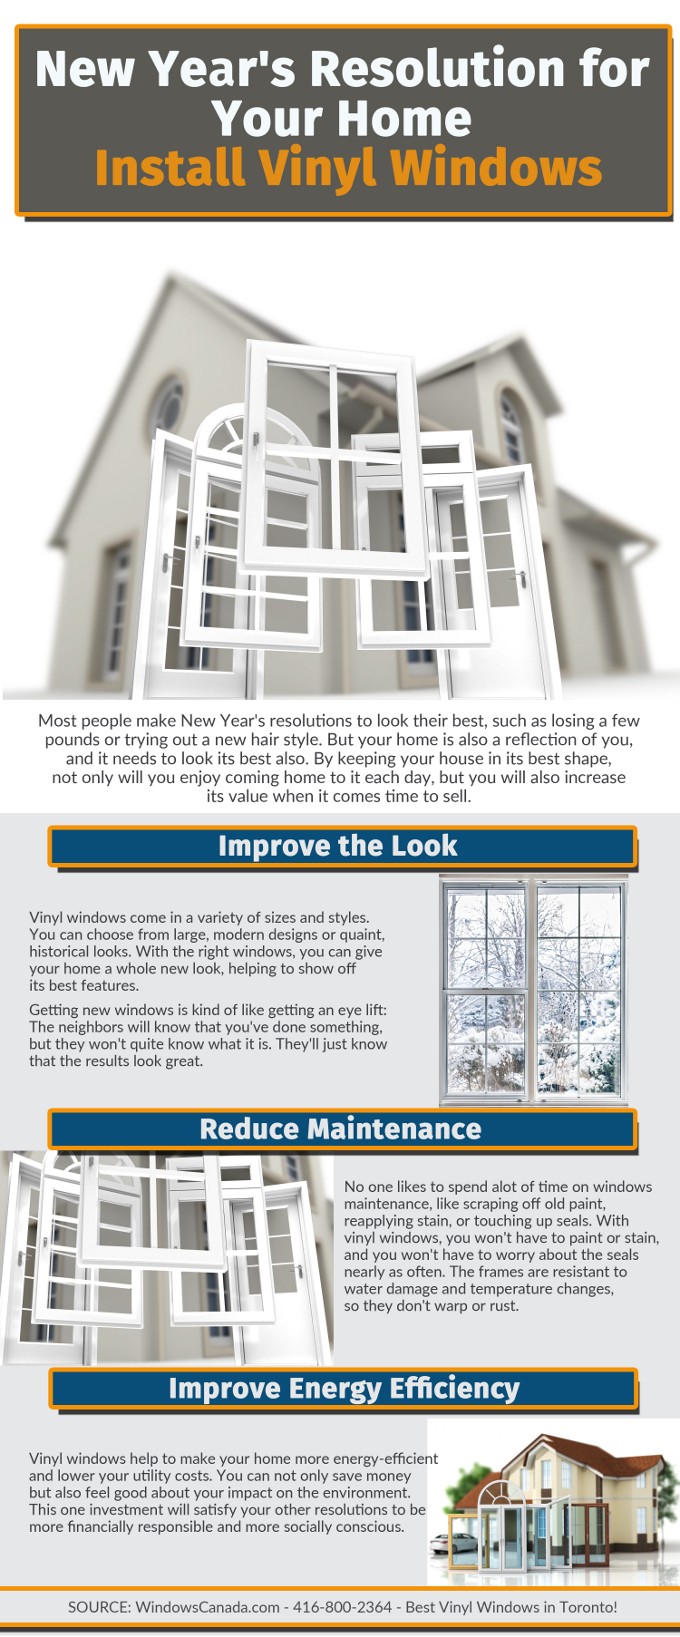 New Year's Resolution for Your Home: Install Vinyl Windows